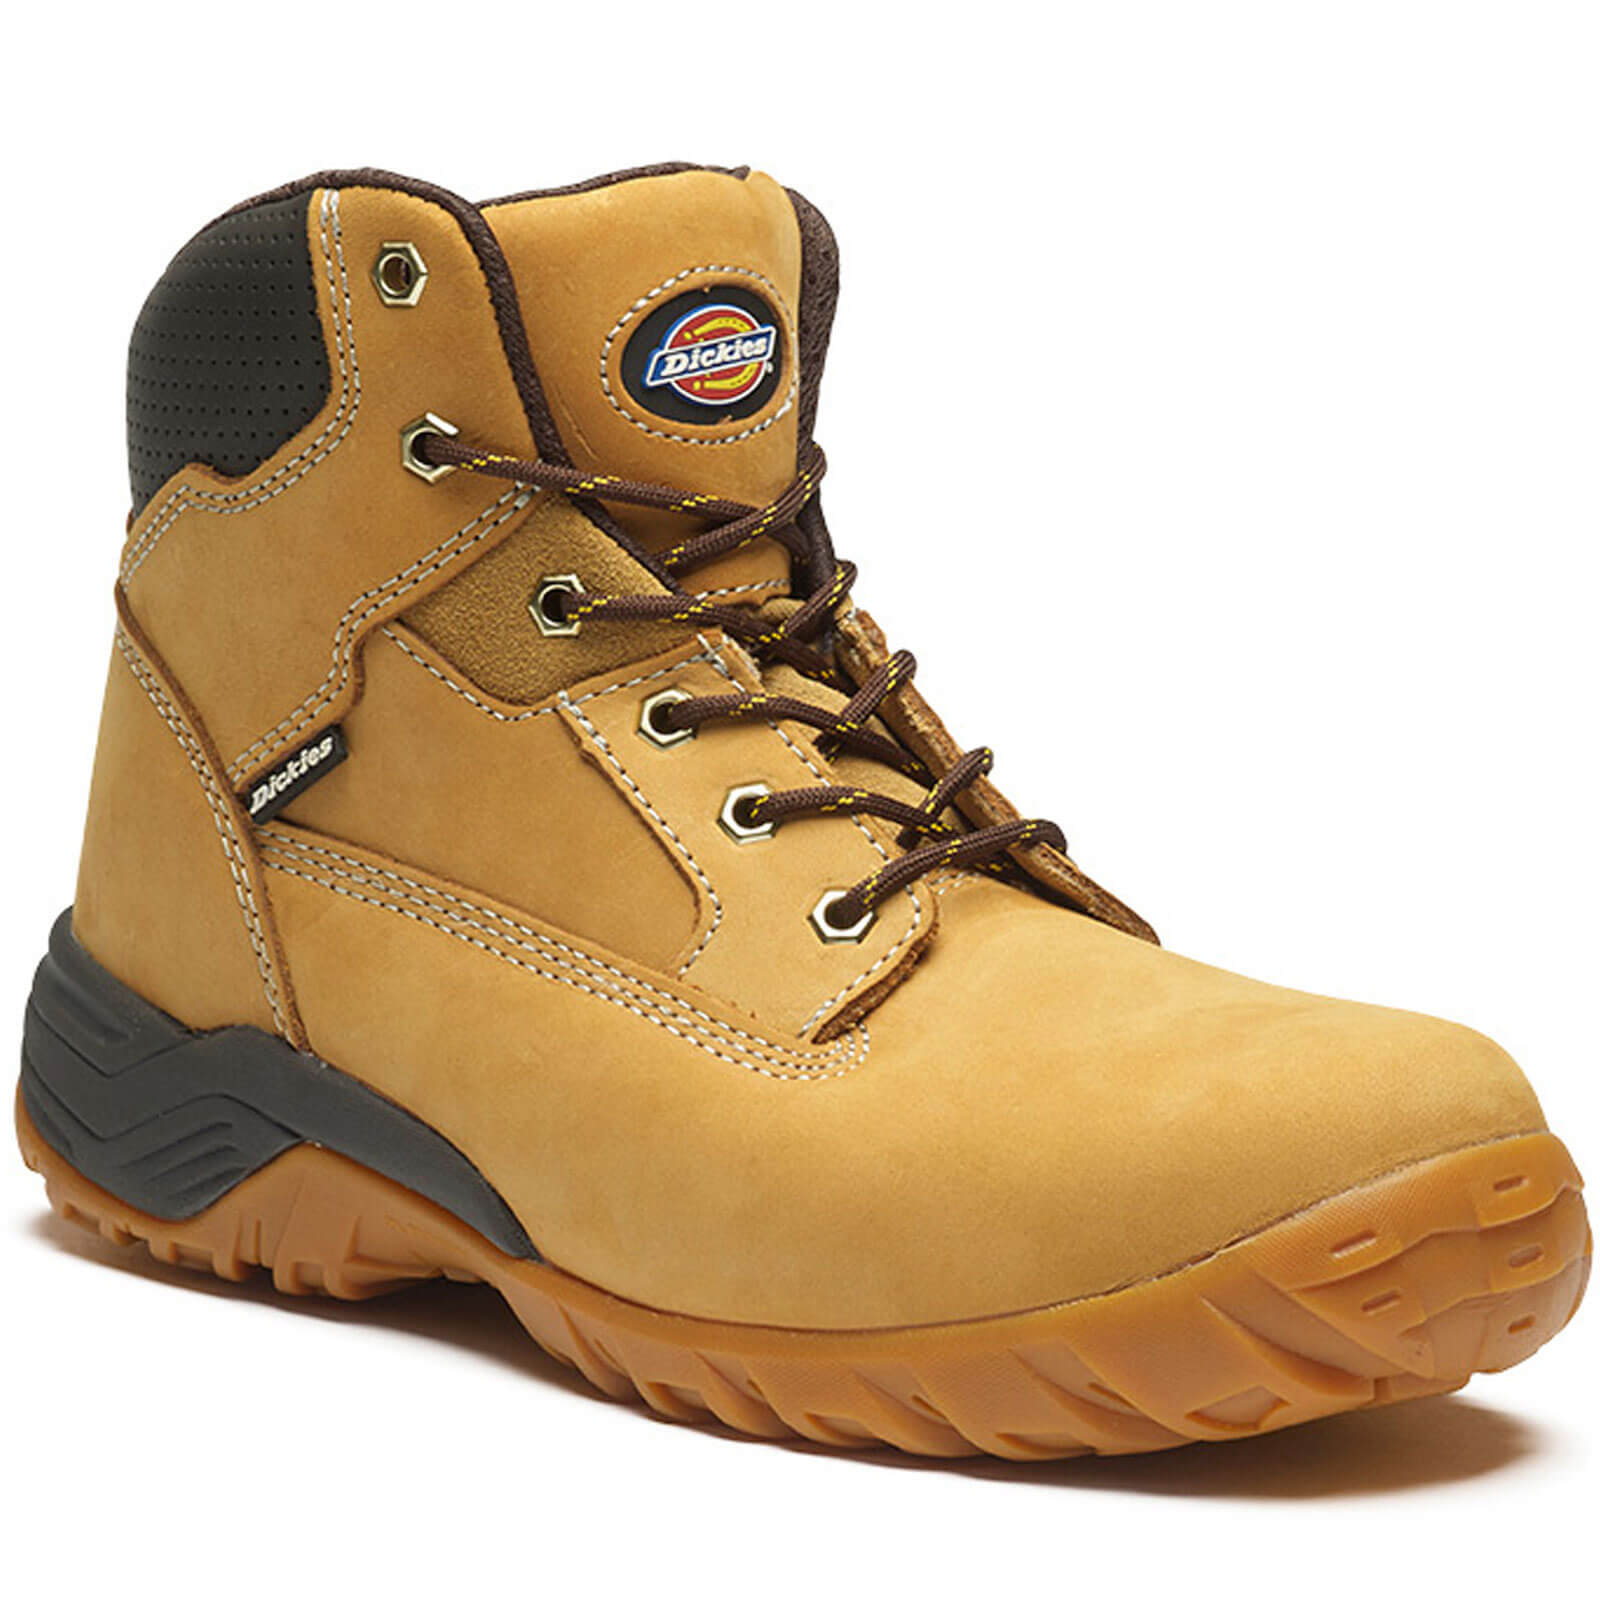 Dickies Mens Graton Safety Boots Honey Size 11